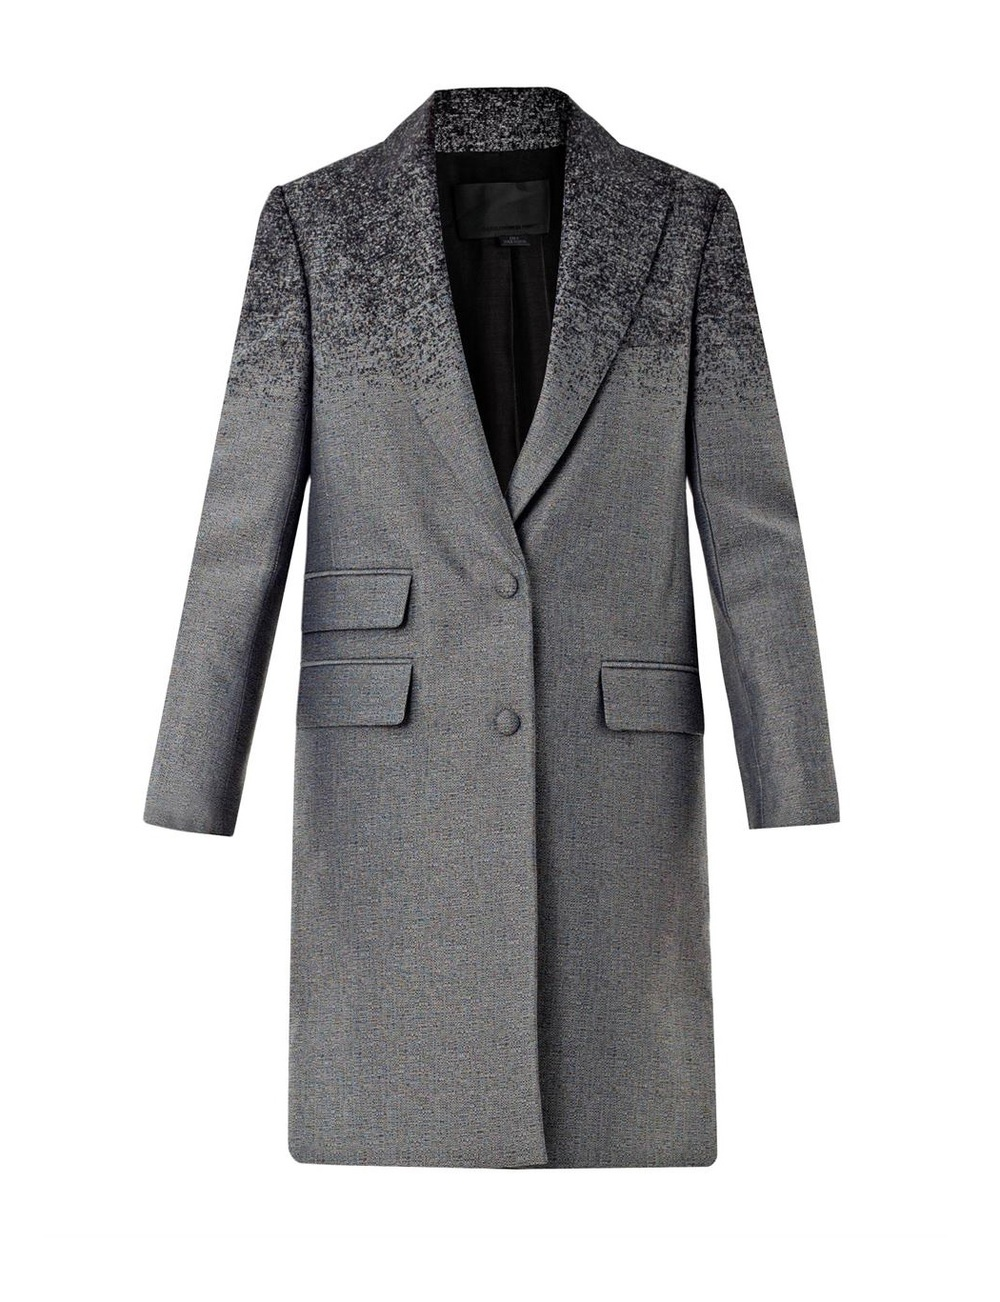 ALEXANDER WANG    Degradé Single-breasted Coat   currently 50% off